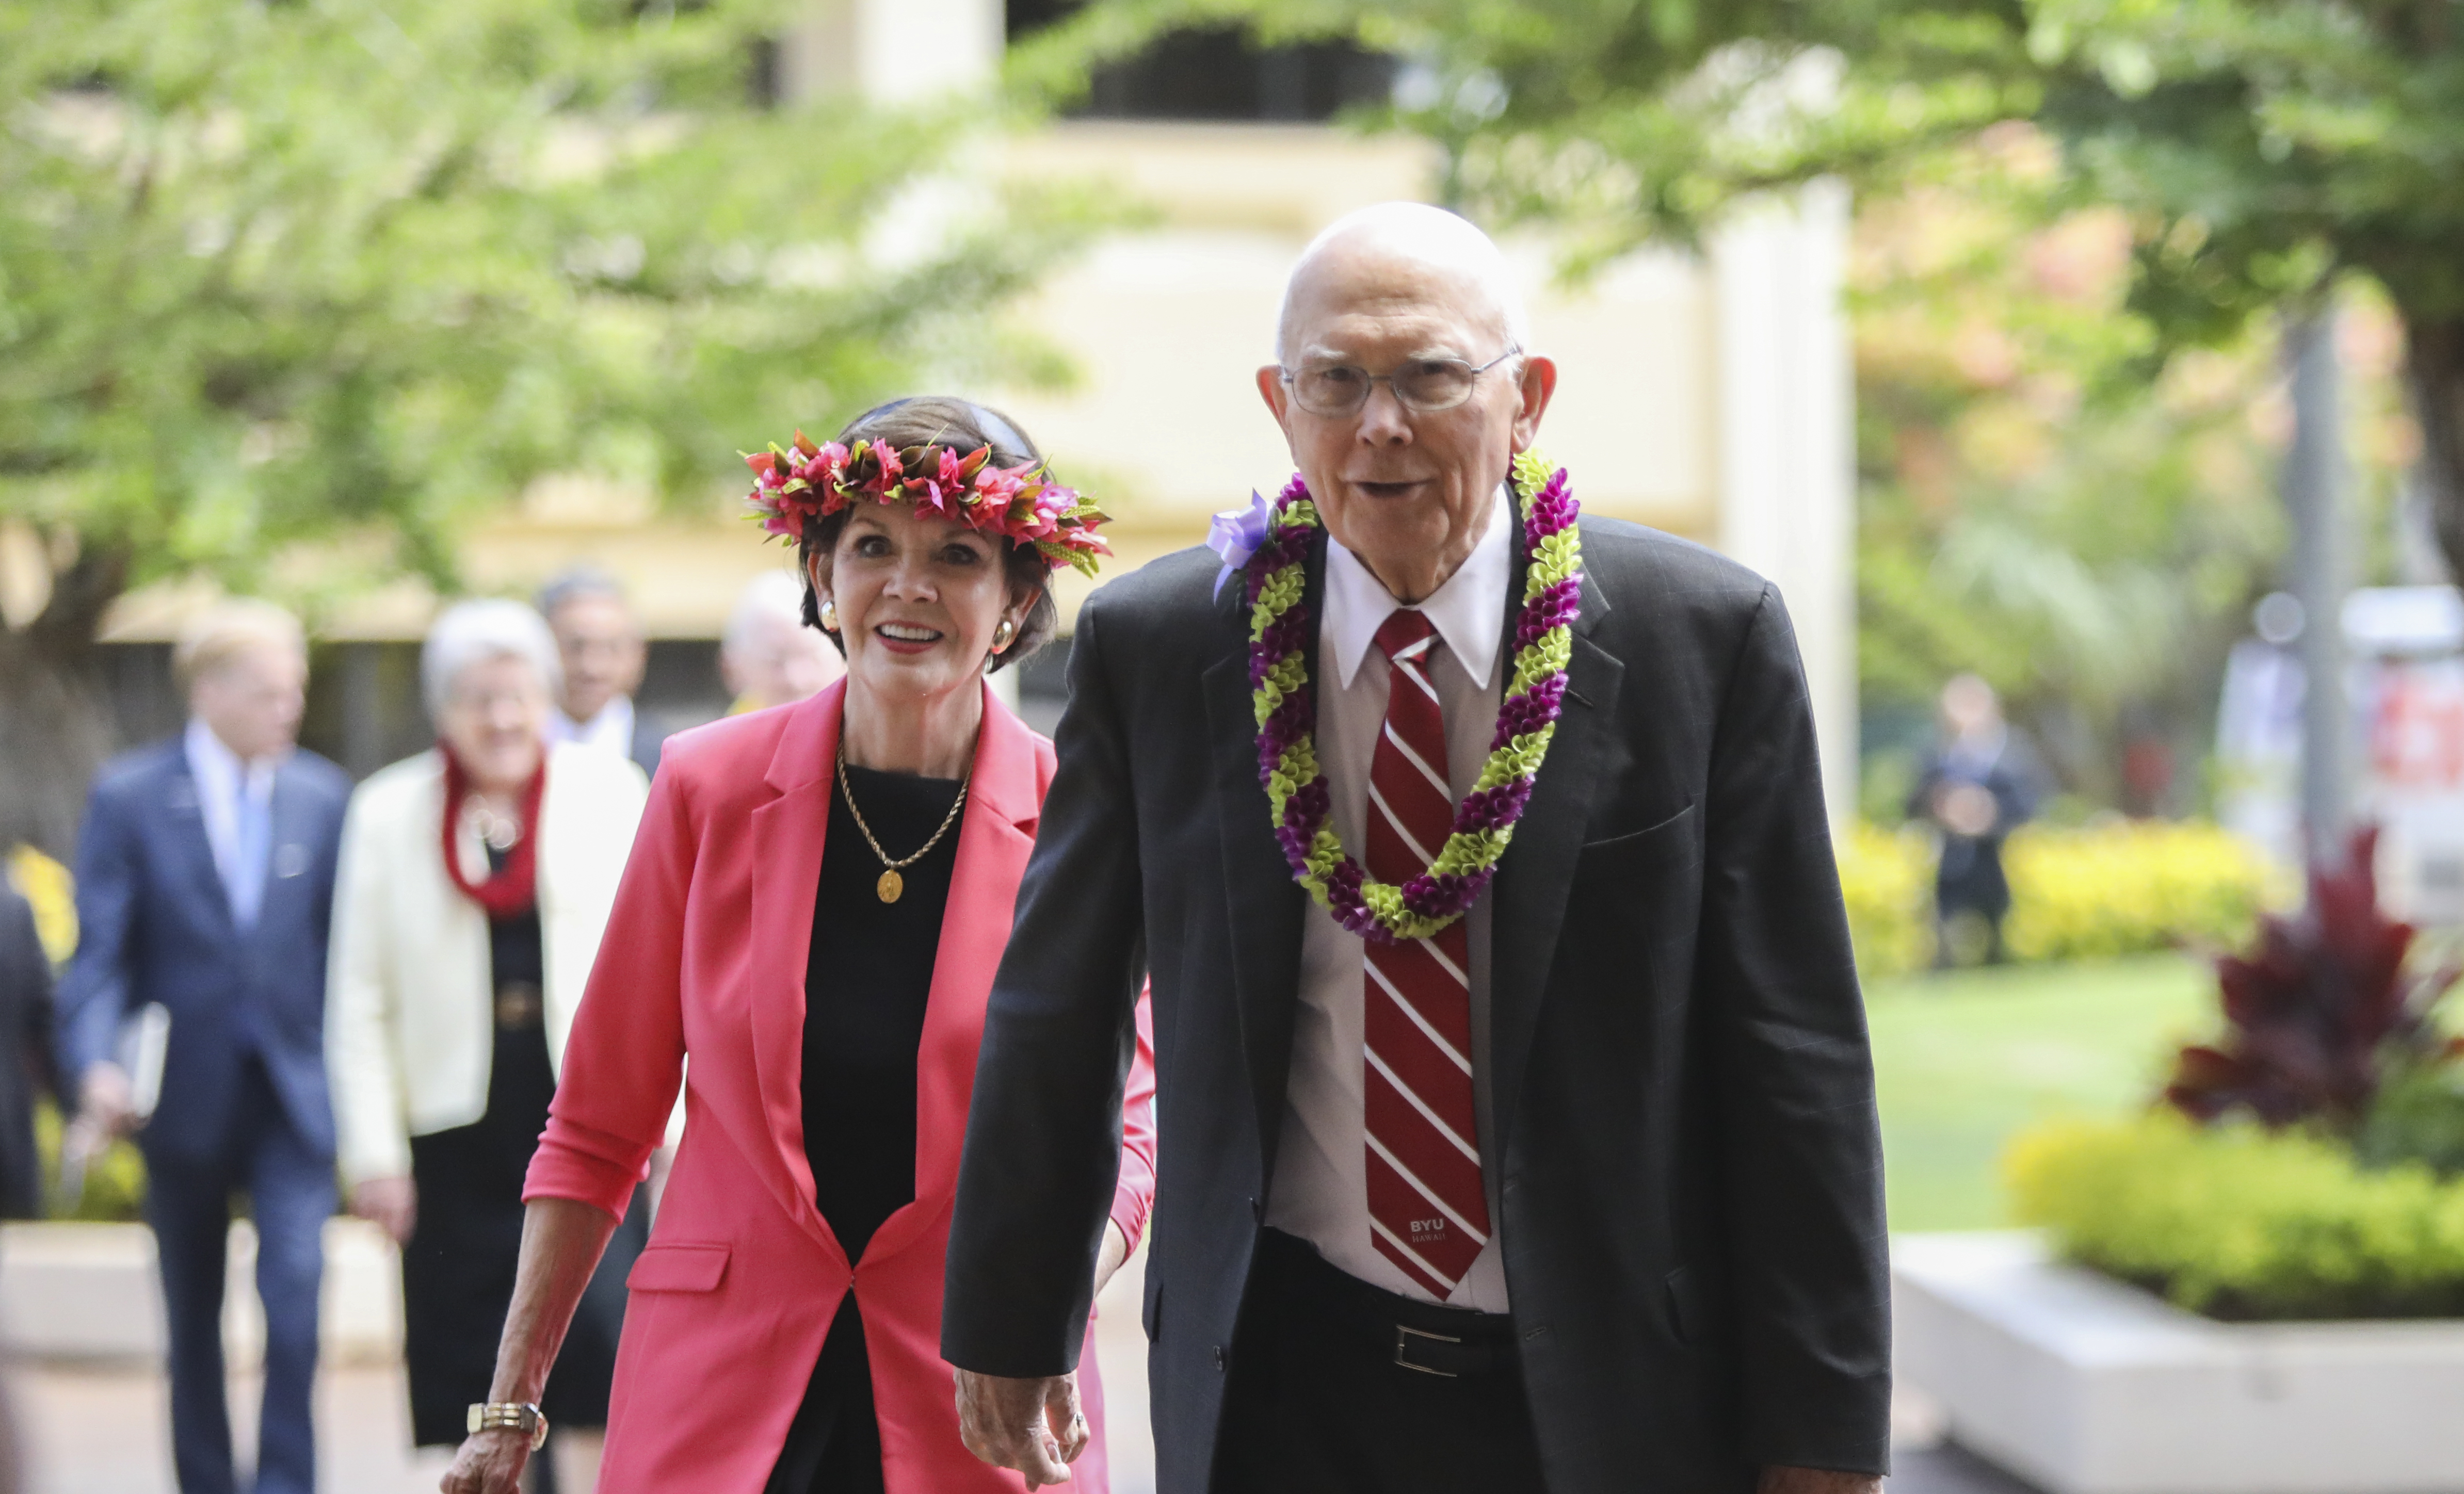 President Dallin H. Oaks, center, arrives at the George Q. Cannon Activities Center with his wife, Sister Kristen Oaks, before a BYU-Hawaii devotional on June 11, 2019.